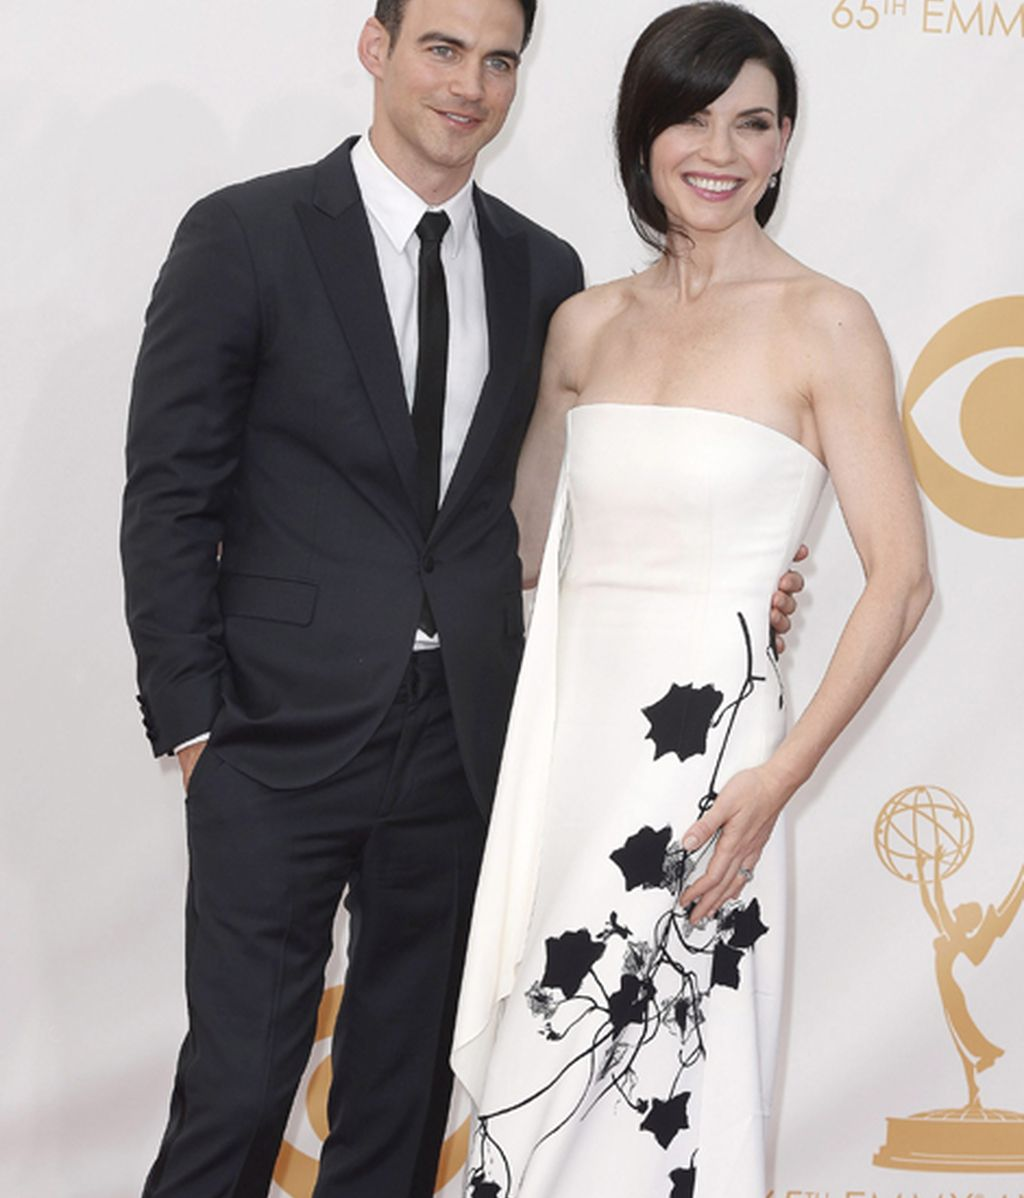 Julianna Margulies ('The good wife') y Keith Liberthal